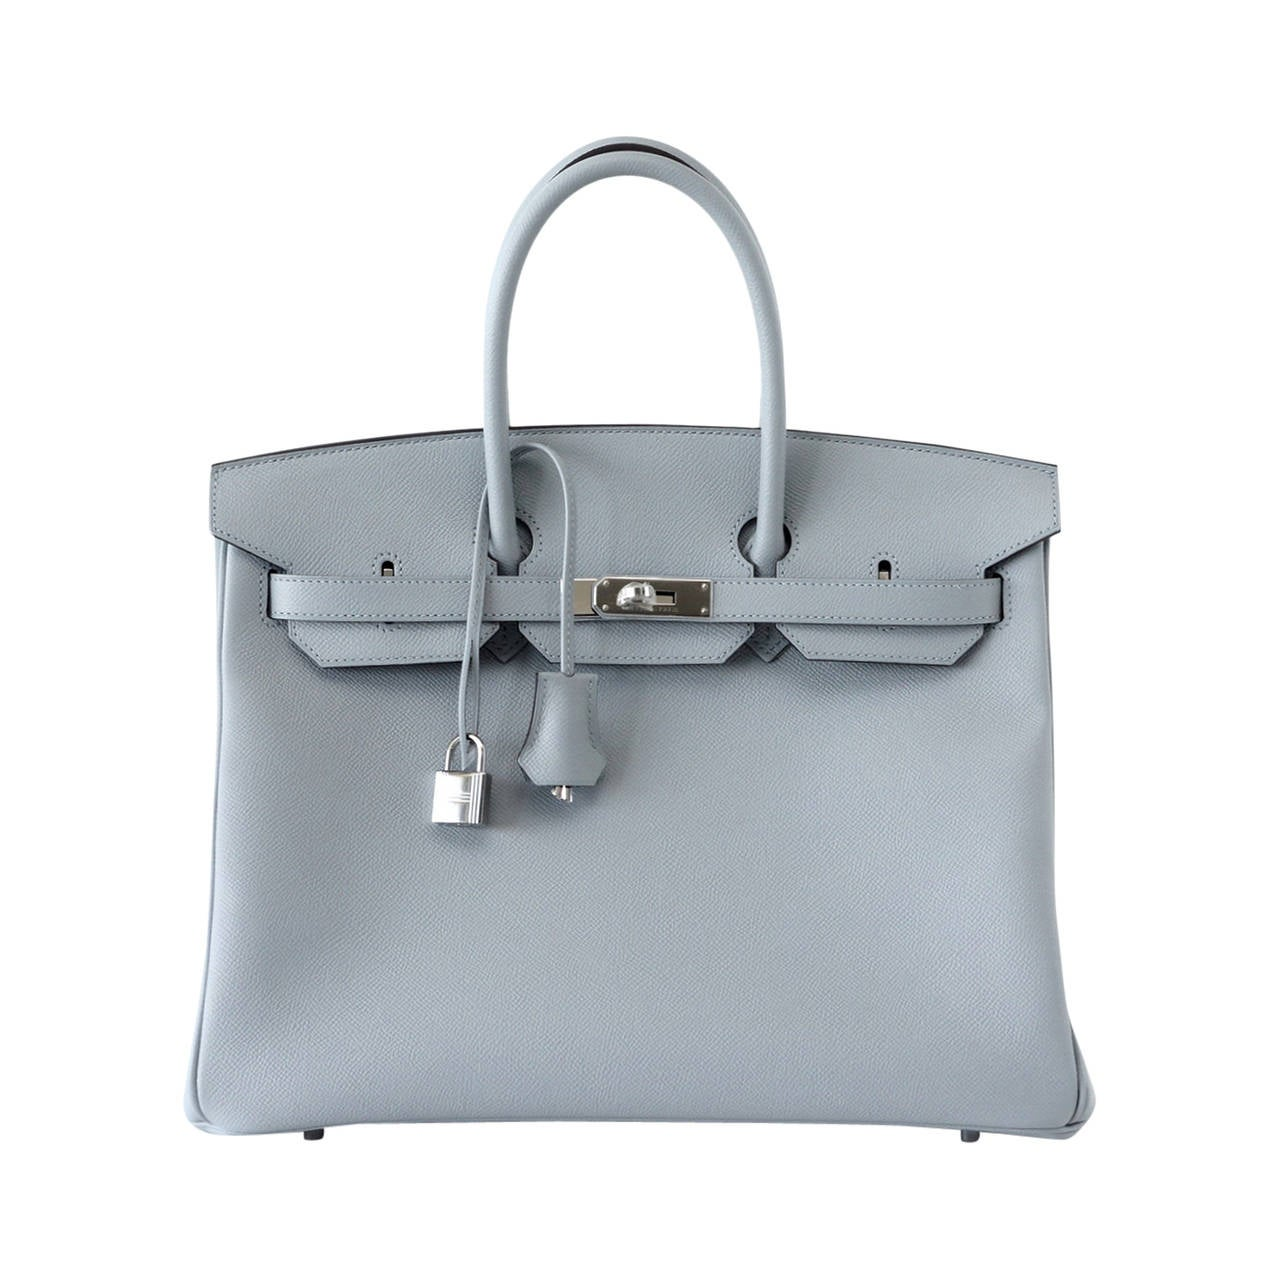 HERMES BIRKIN 35 bag Bleu Glacier New fall/winter 2105 colour 1